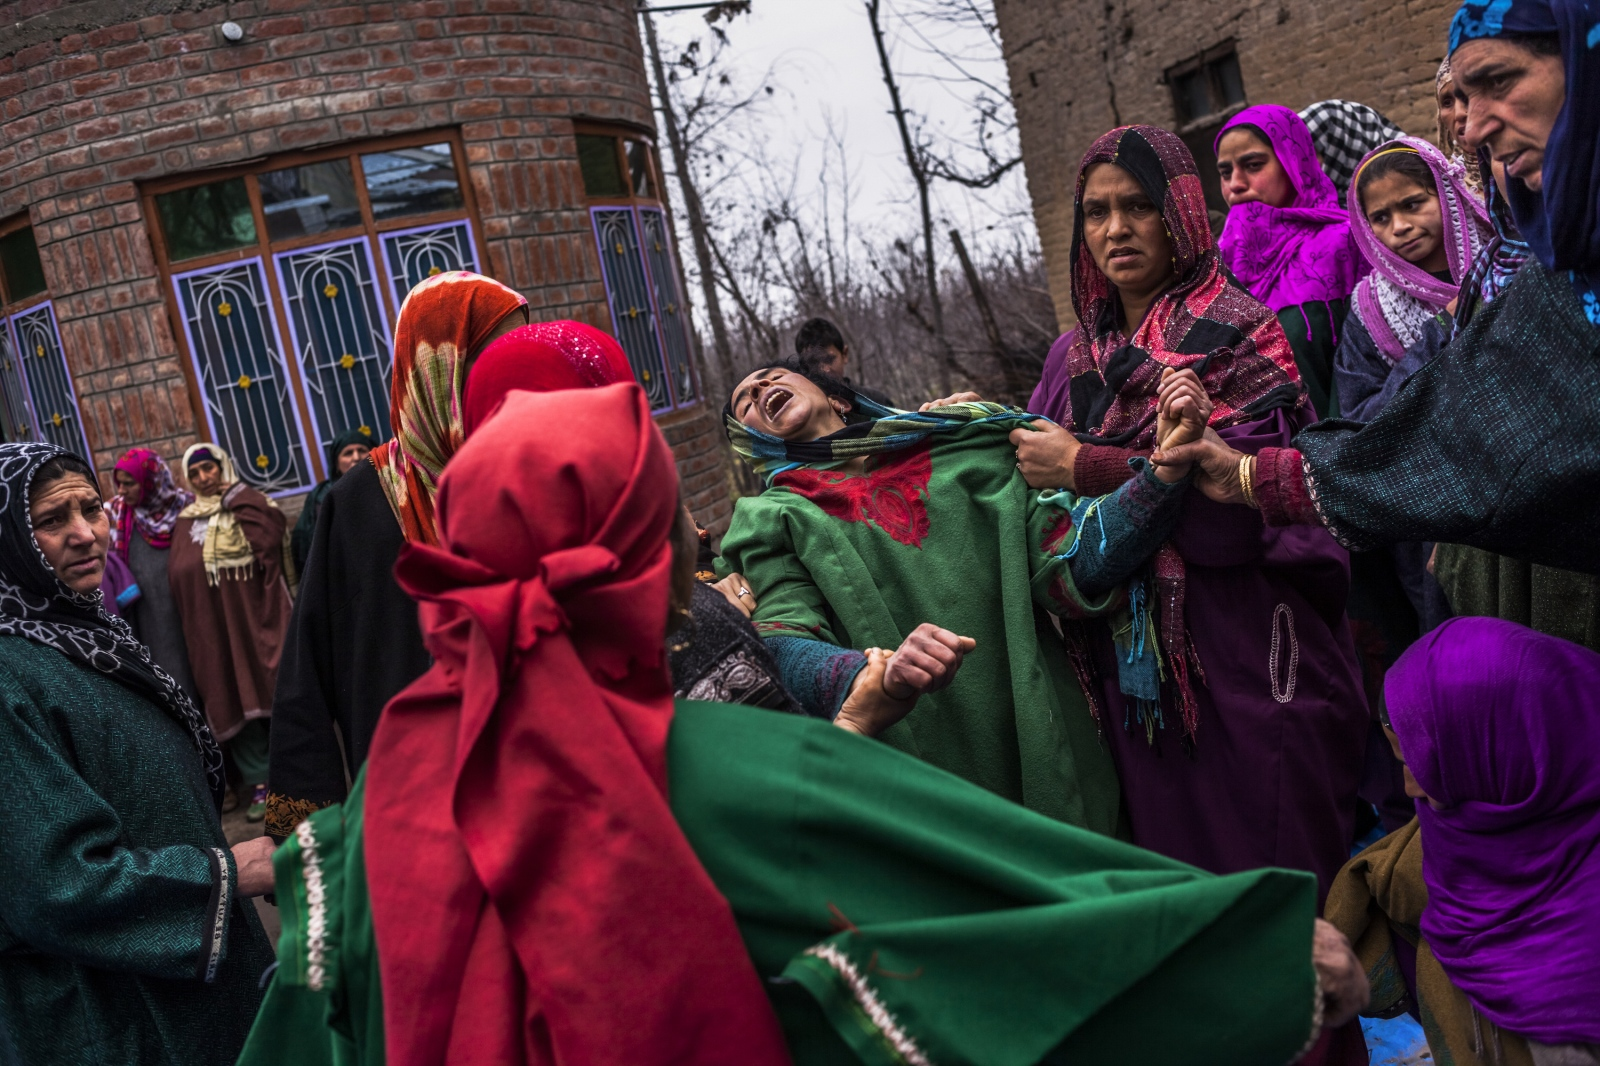 Kashmiri relative Hafeeza Khan (C), weeps during the funeral of nephew Rasiq Ahmed Khan, aged around 22, and who was found shot to death, at their home in Watchohallan village in Shopian, south Kashmir, some 80 kms from Srinagar, on December 14, 2015. Raisq, who disappeared on December 13, was found shot to death by gunmen who local residents report were members of the Indian police Special Operations Group.